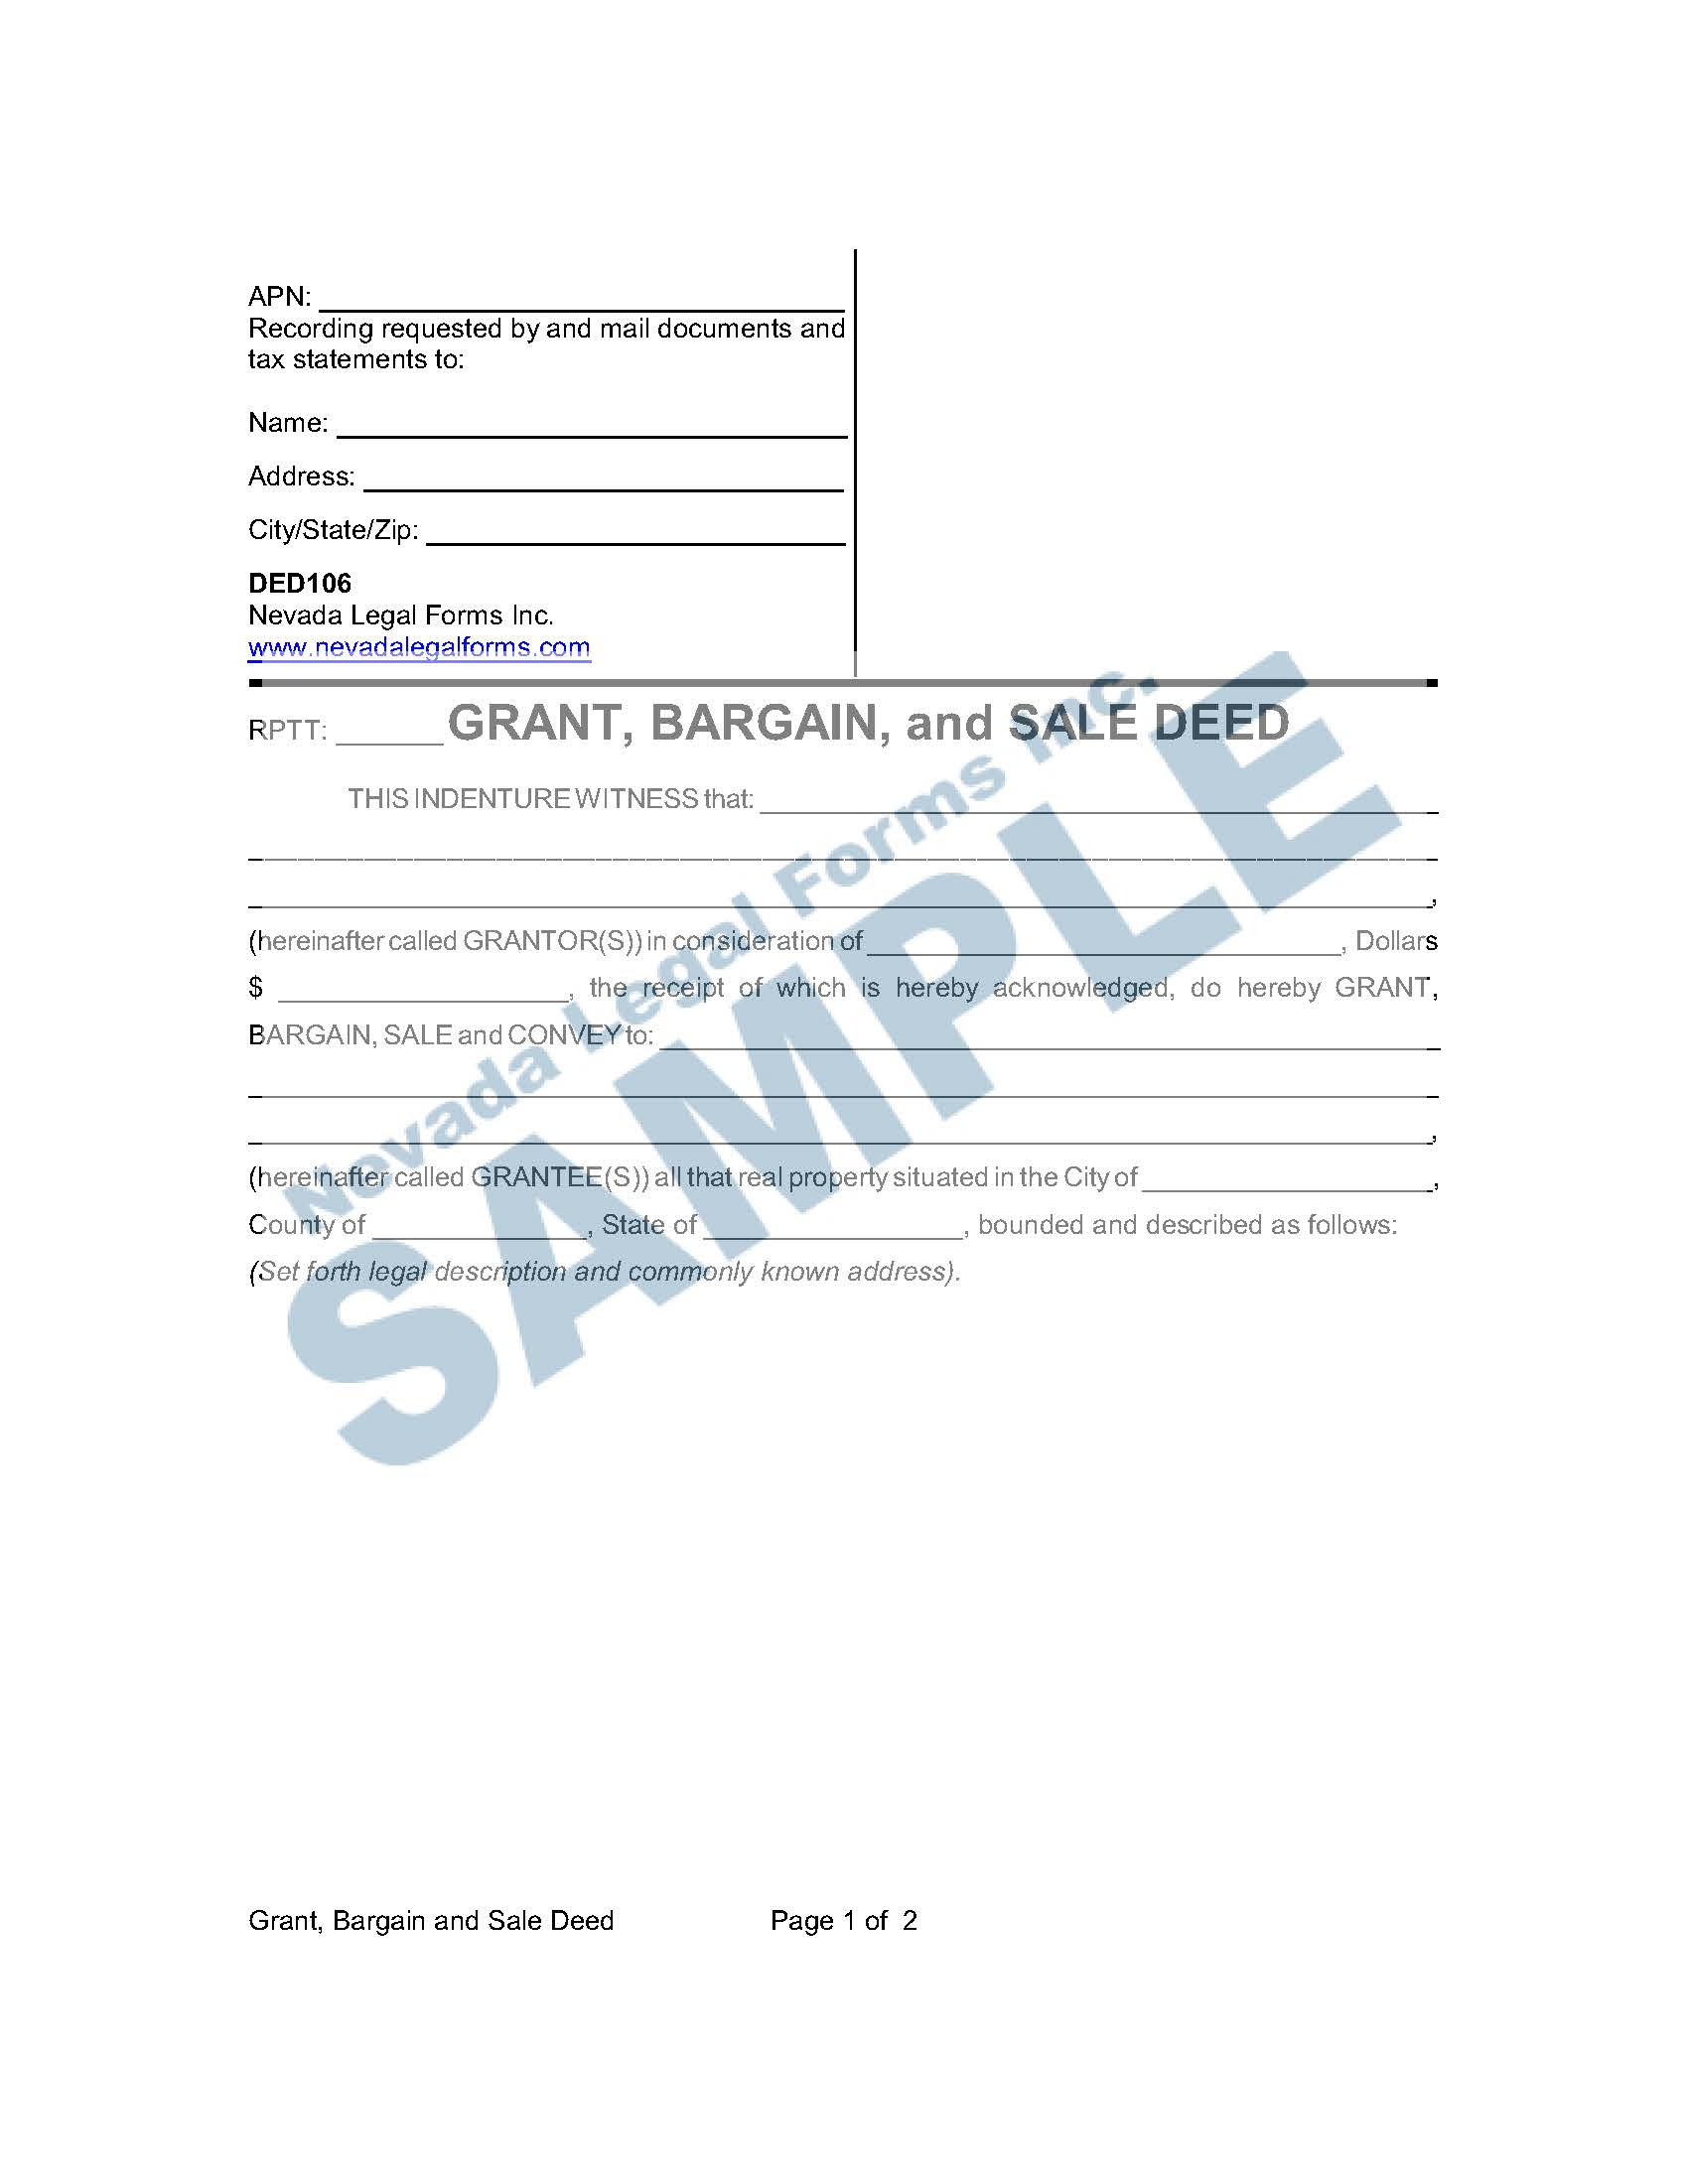 Grant Bargain And Sale Deed